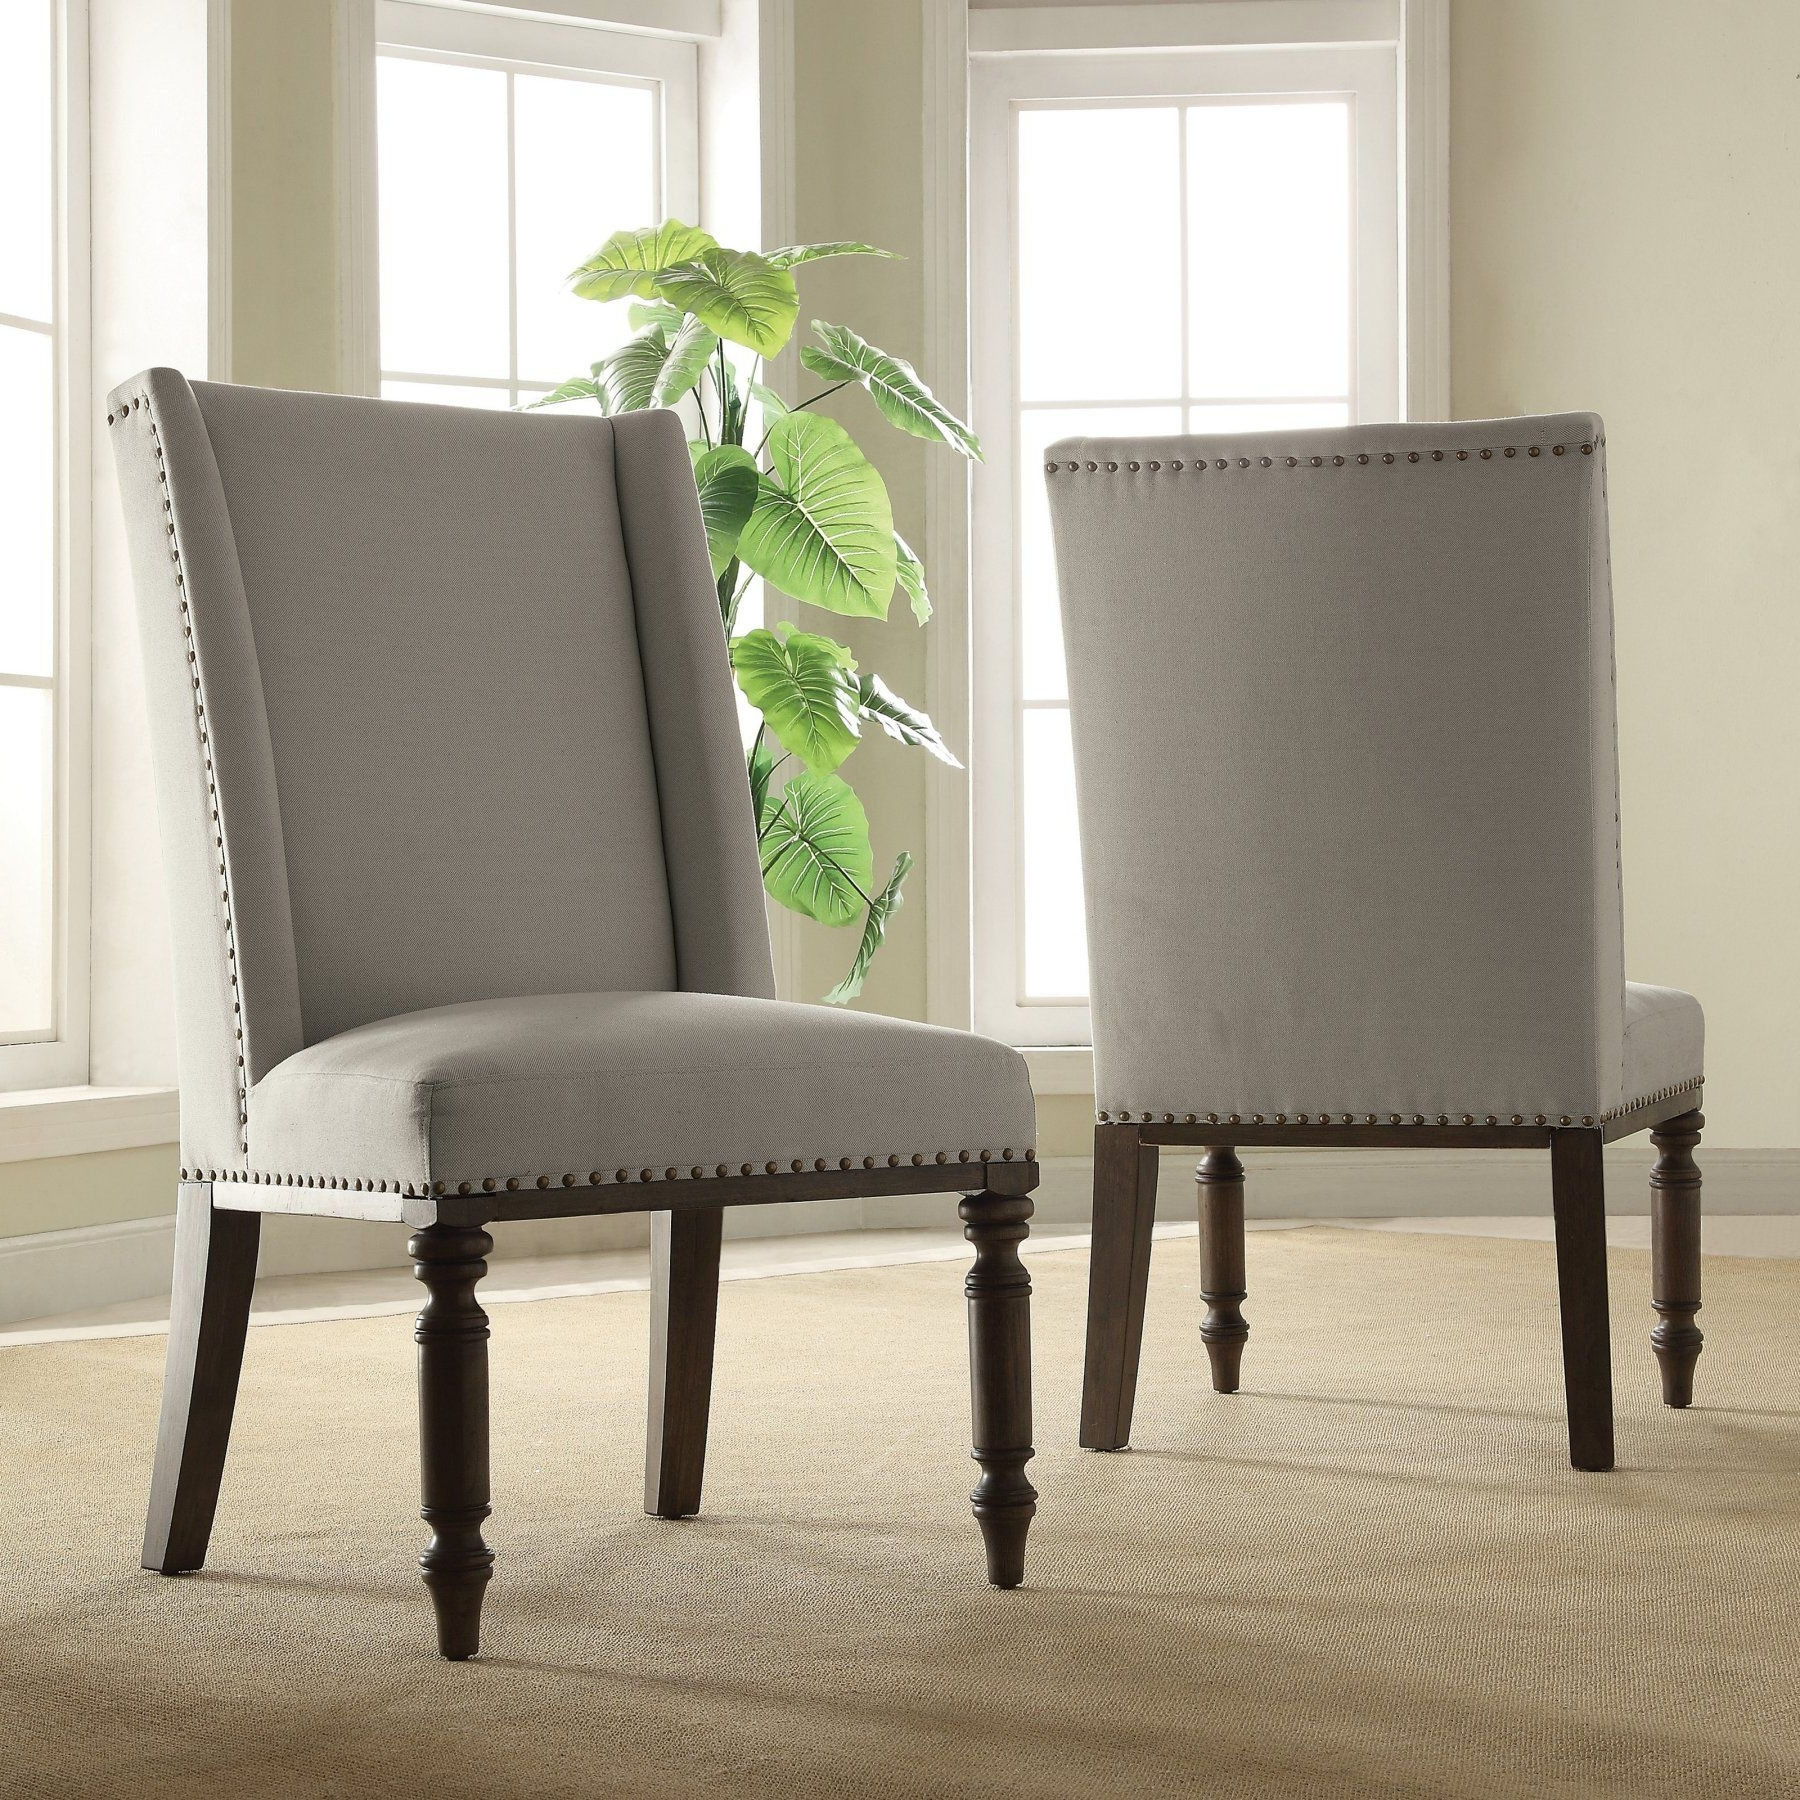 Latest Riverside Belmeade Upholstered Hostess Chairs – Set Of 2 – Rvs2940 Pertaining To Belmeade Side Chairs (View 13 of 20)